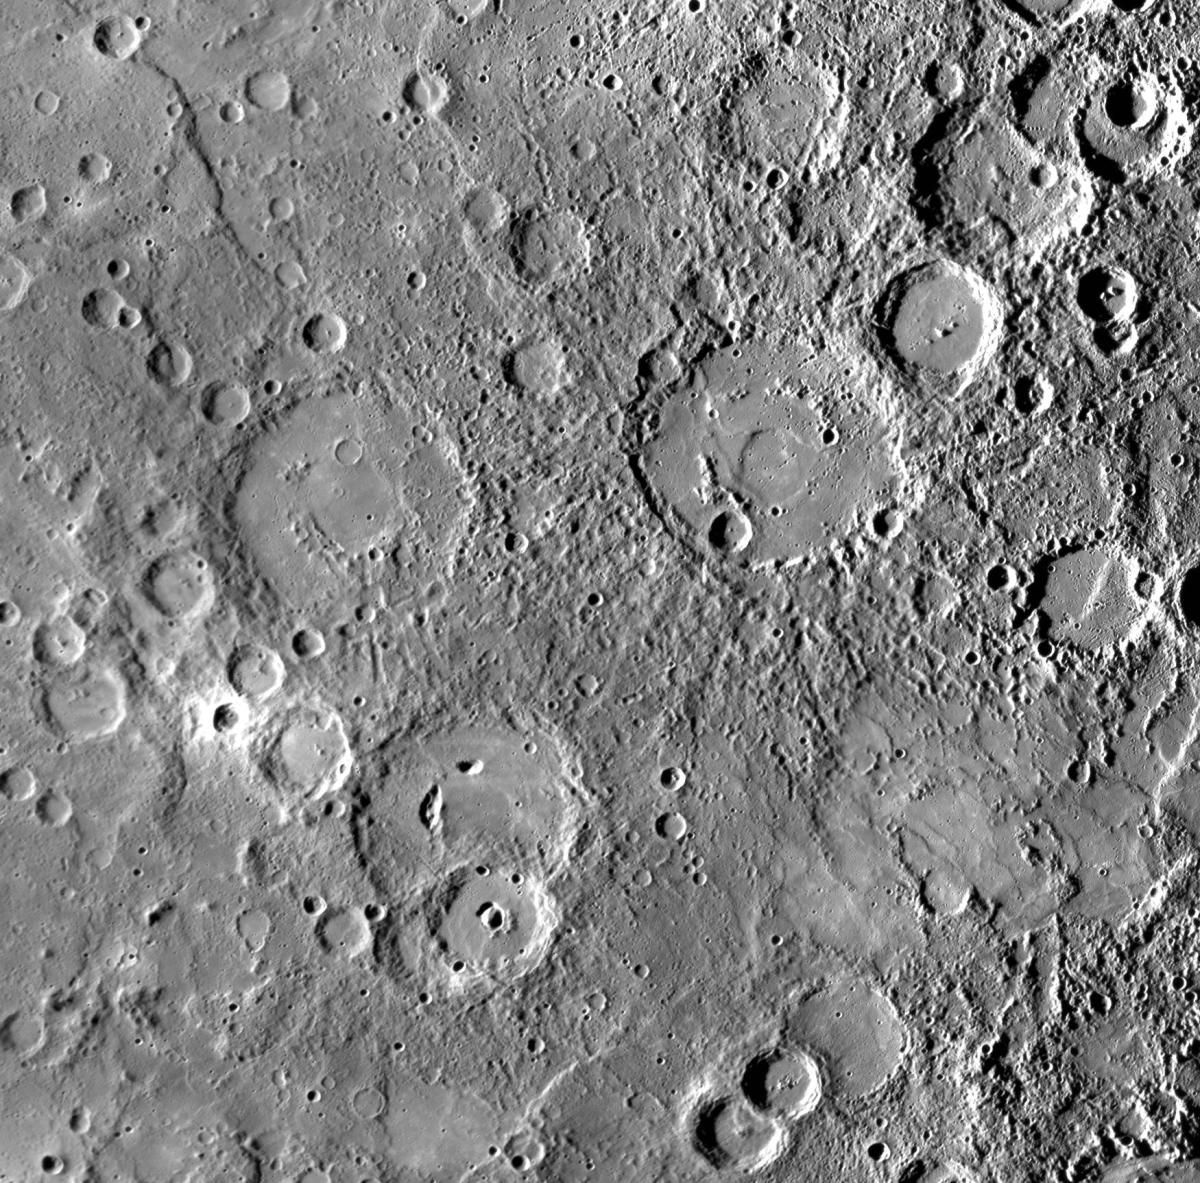 Craters on Mercury including Kipling and Steichen, named in March 2010